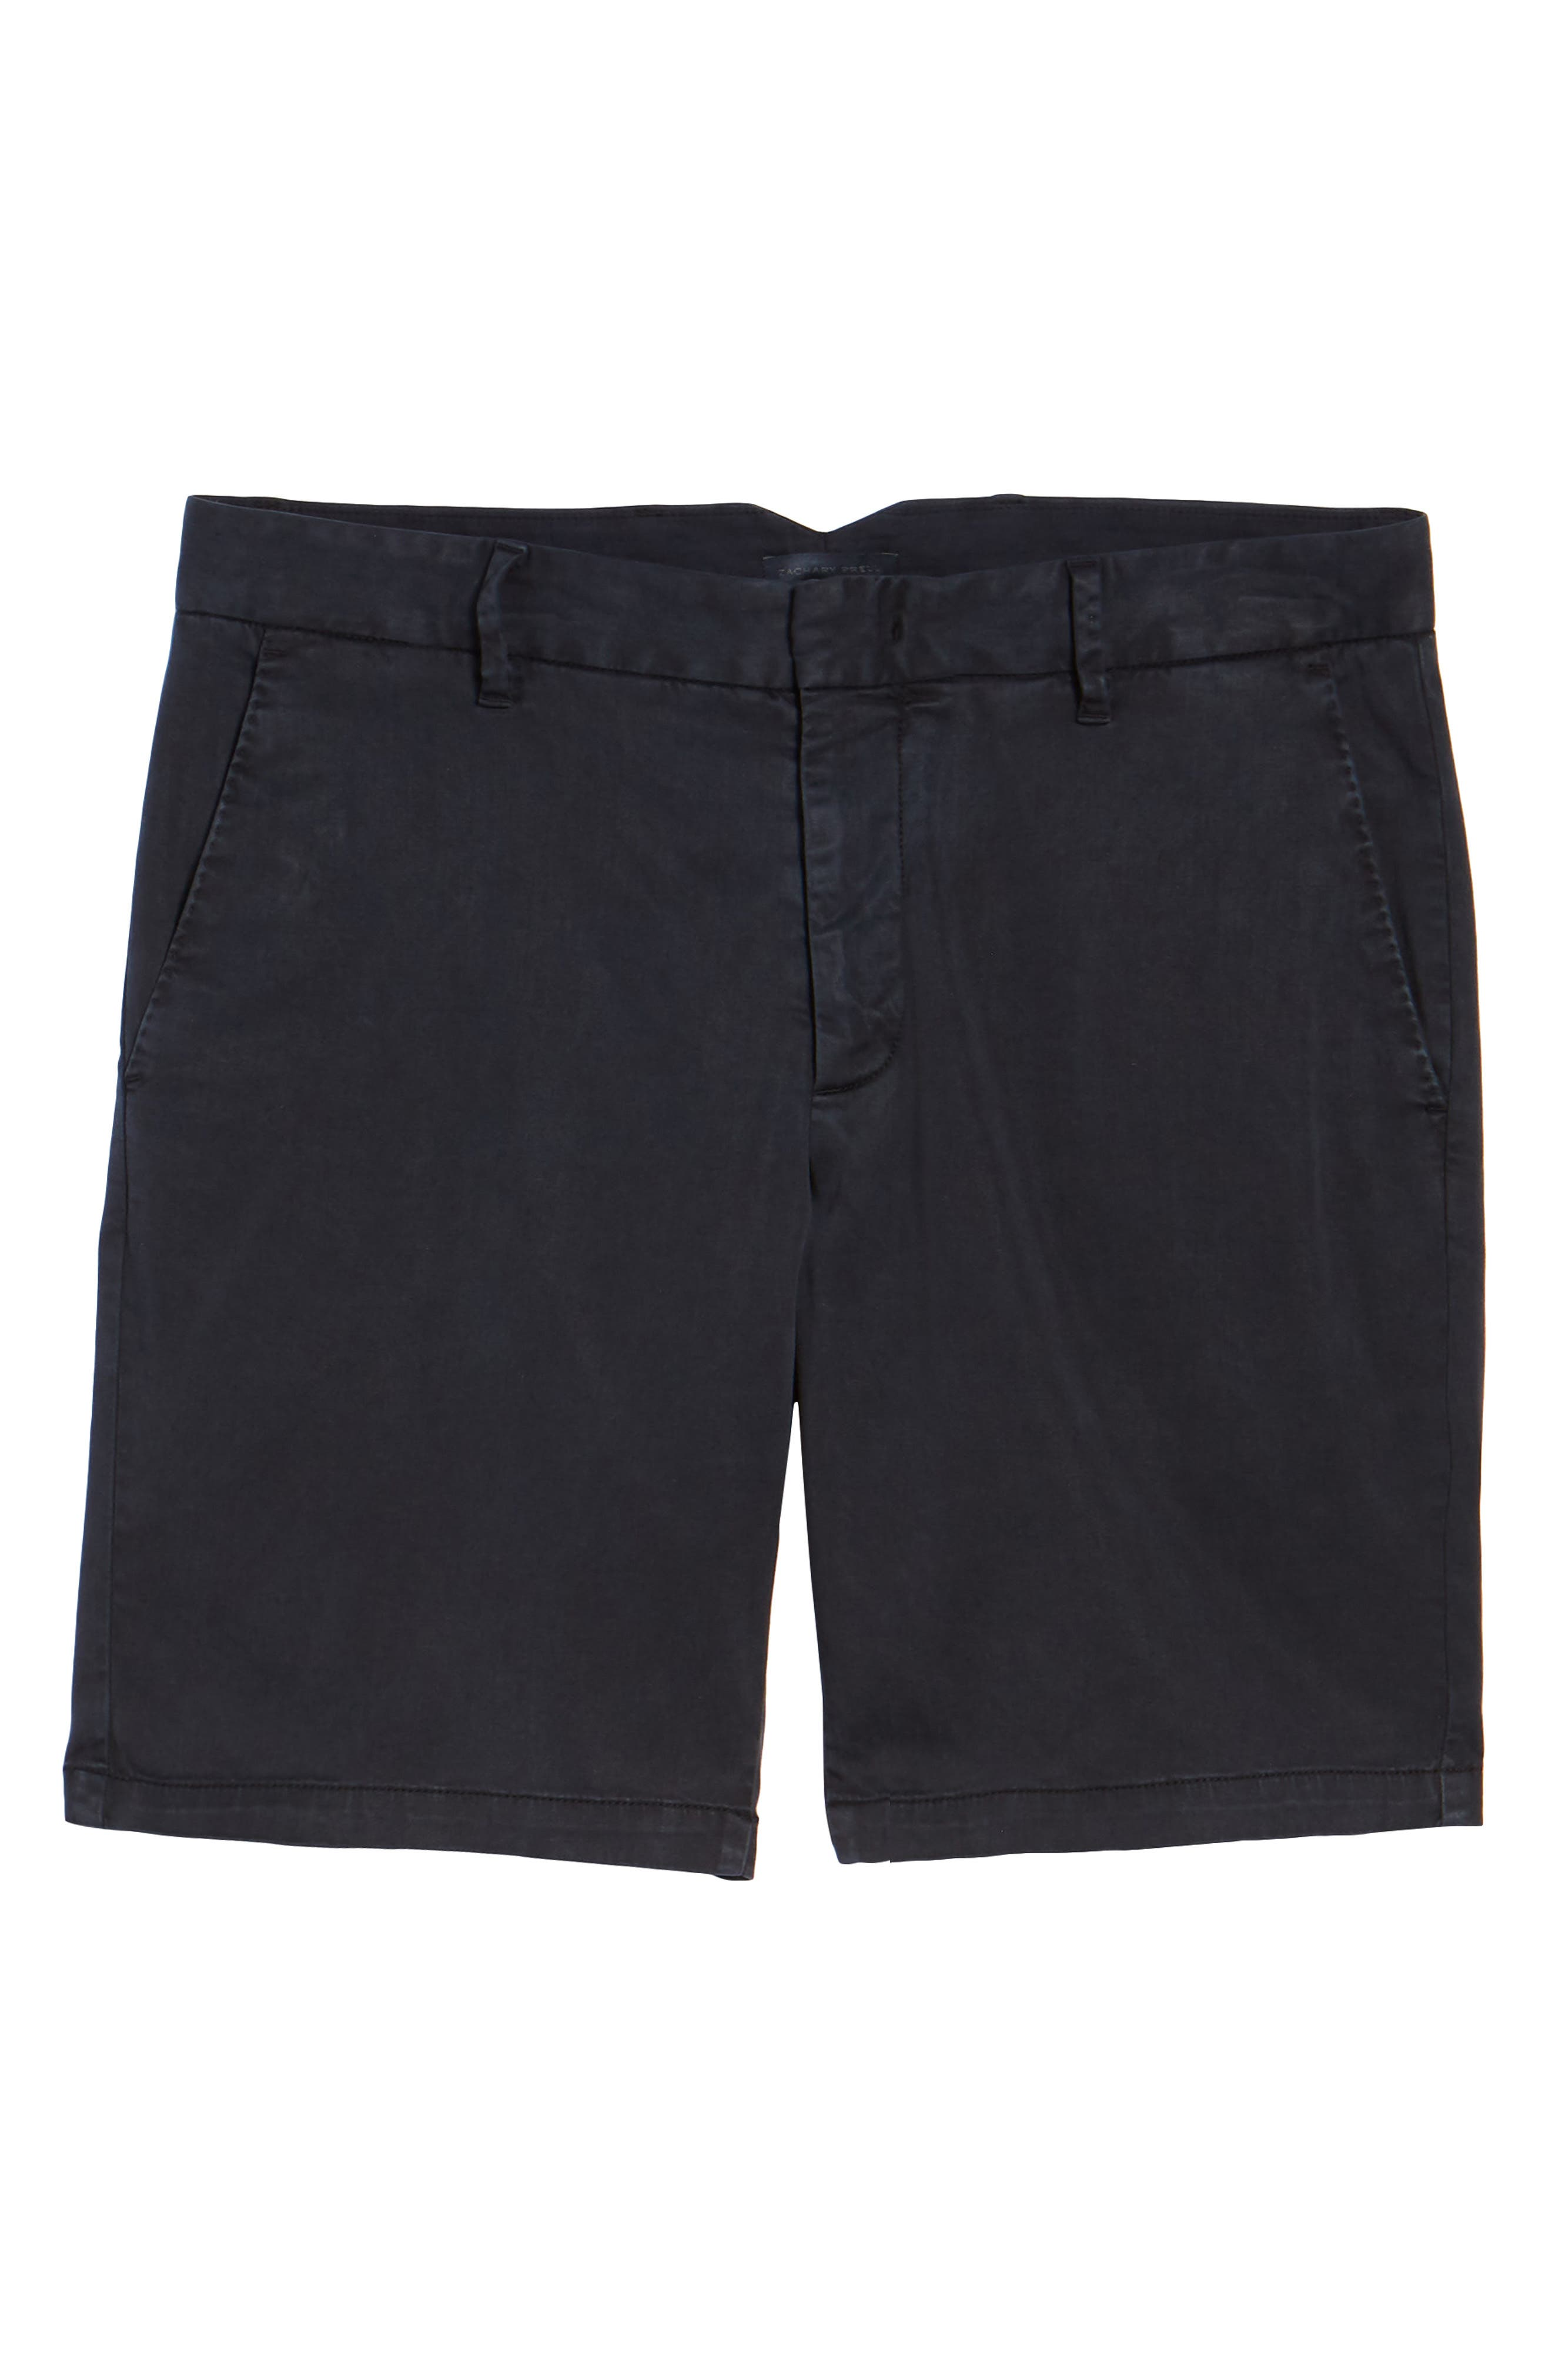 Catalpa Chino Shorts,                             Alternate thumbnail 6, color,                             NAVY